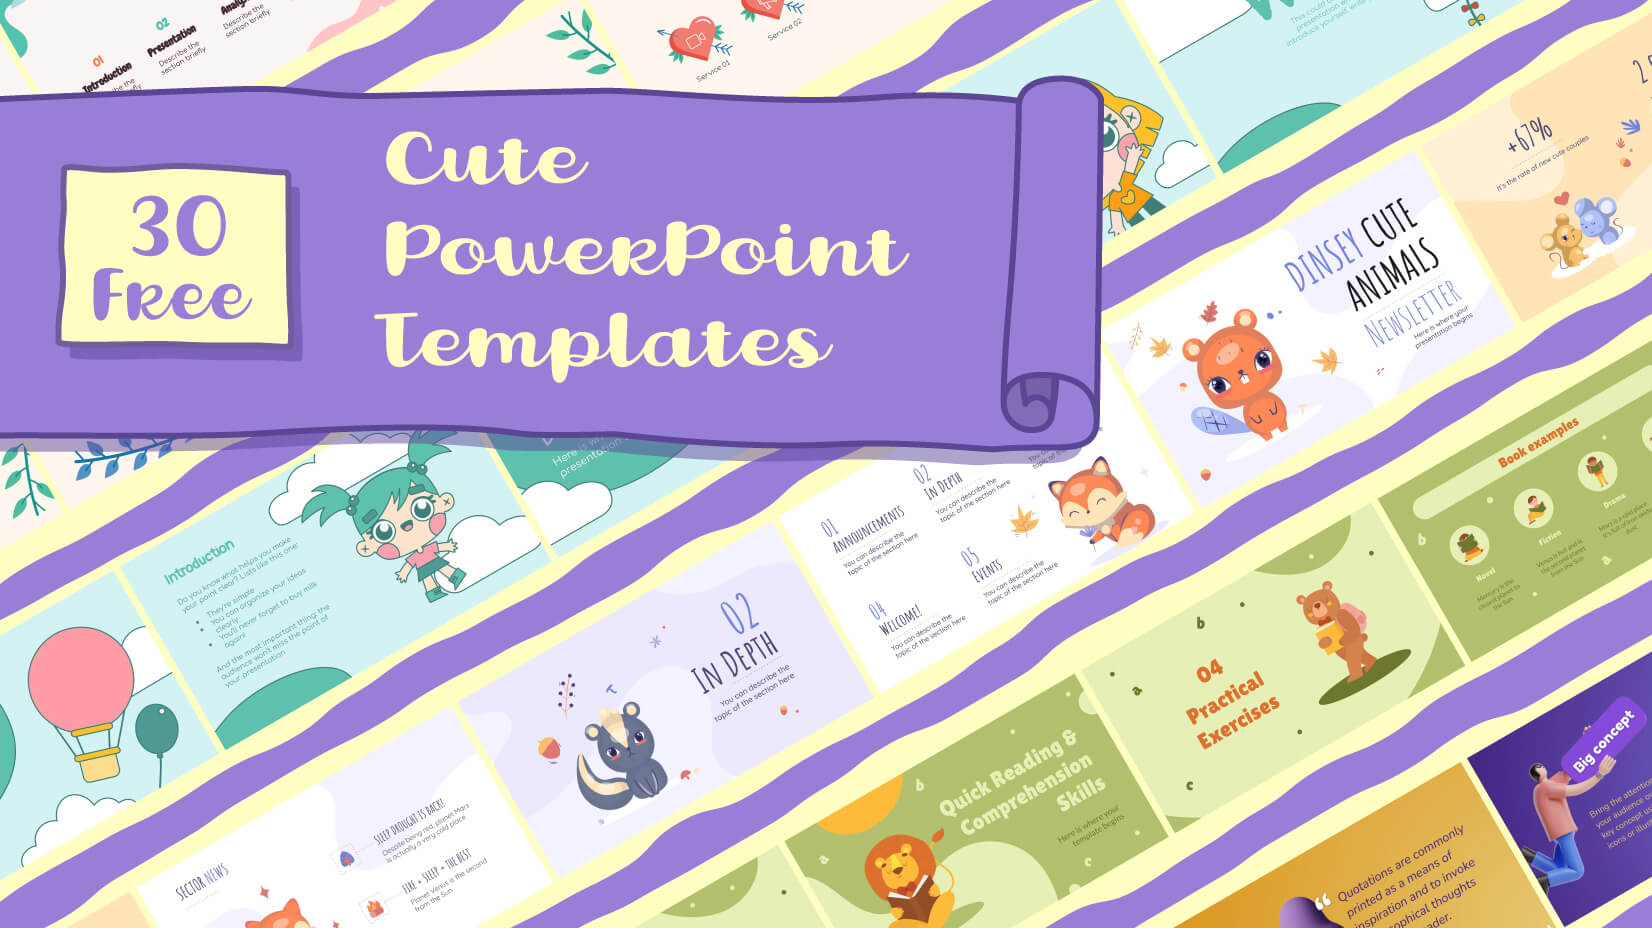 30 Free Cute PowerPoint Templates: Collection For A Sweet Presentation